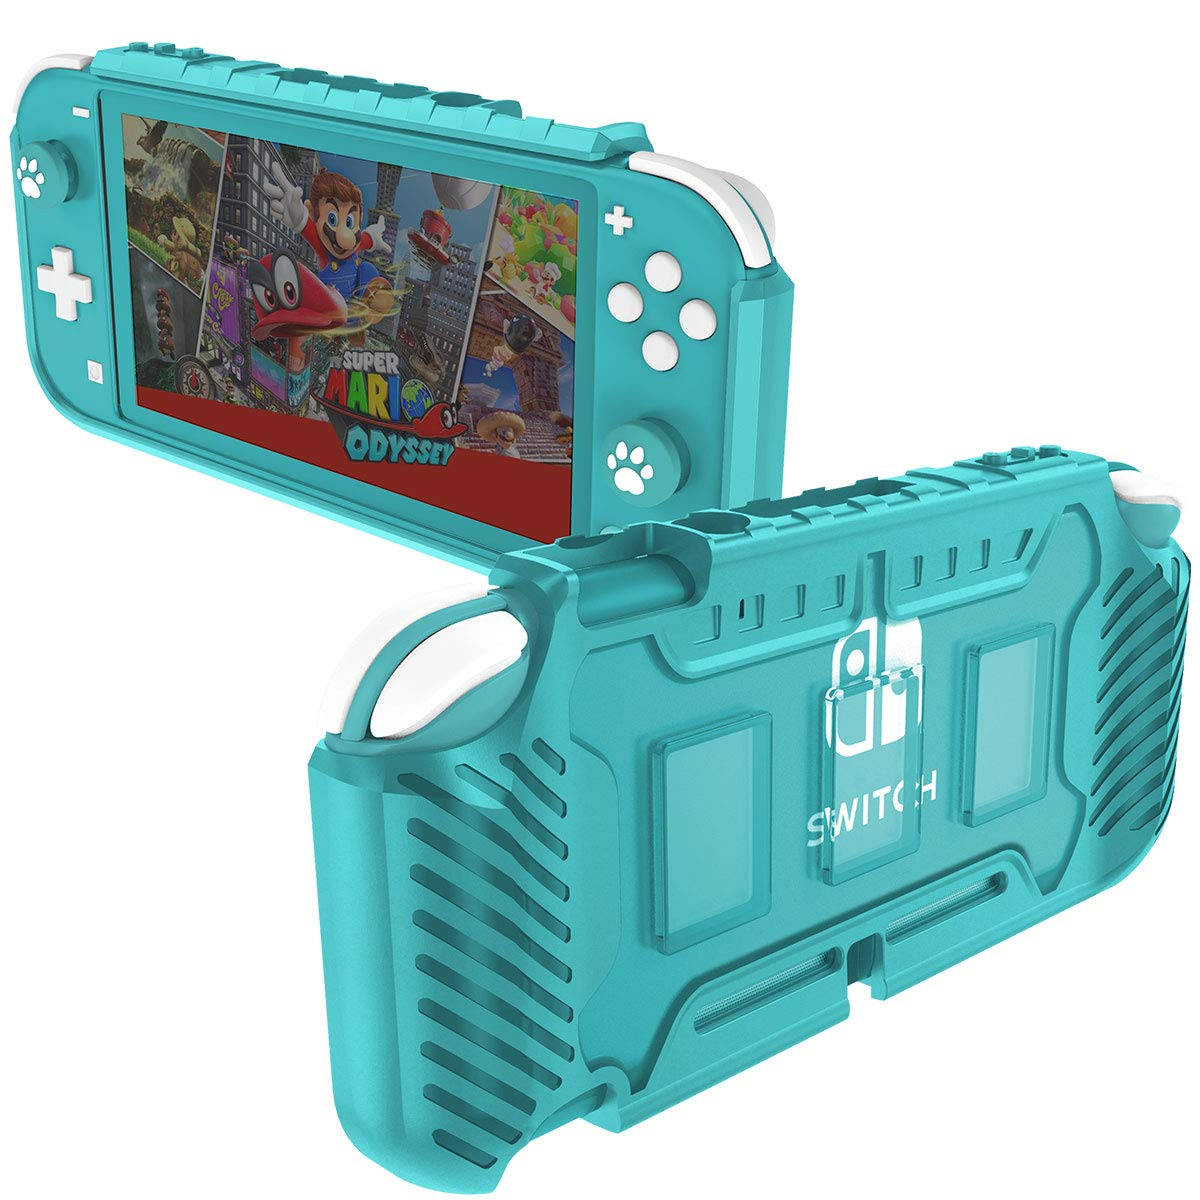 KIWIHOME Protective Case for Switch Lite 2019, TPU Grip Cover Case Accessories for Switch Lite Console with Joystick Caps and Game Card Slots (Turquoise)